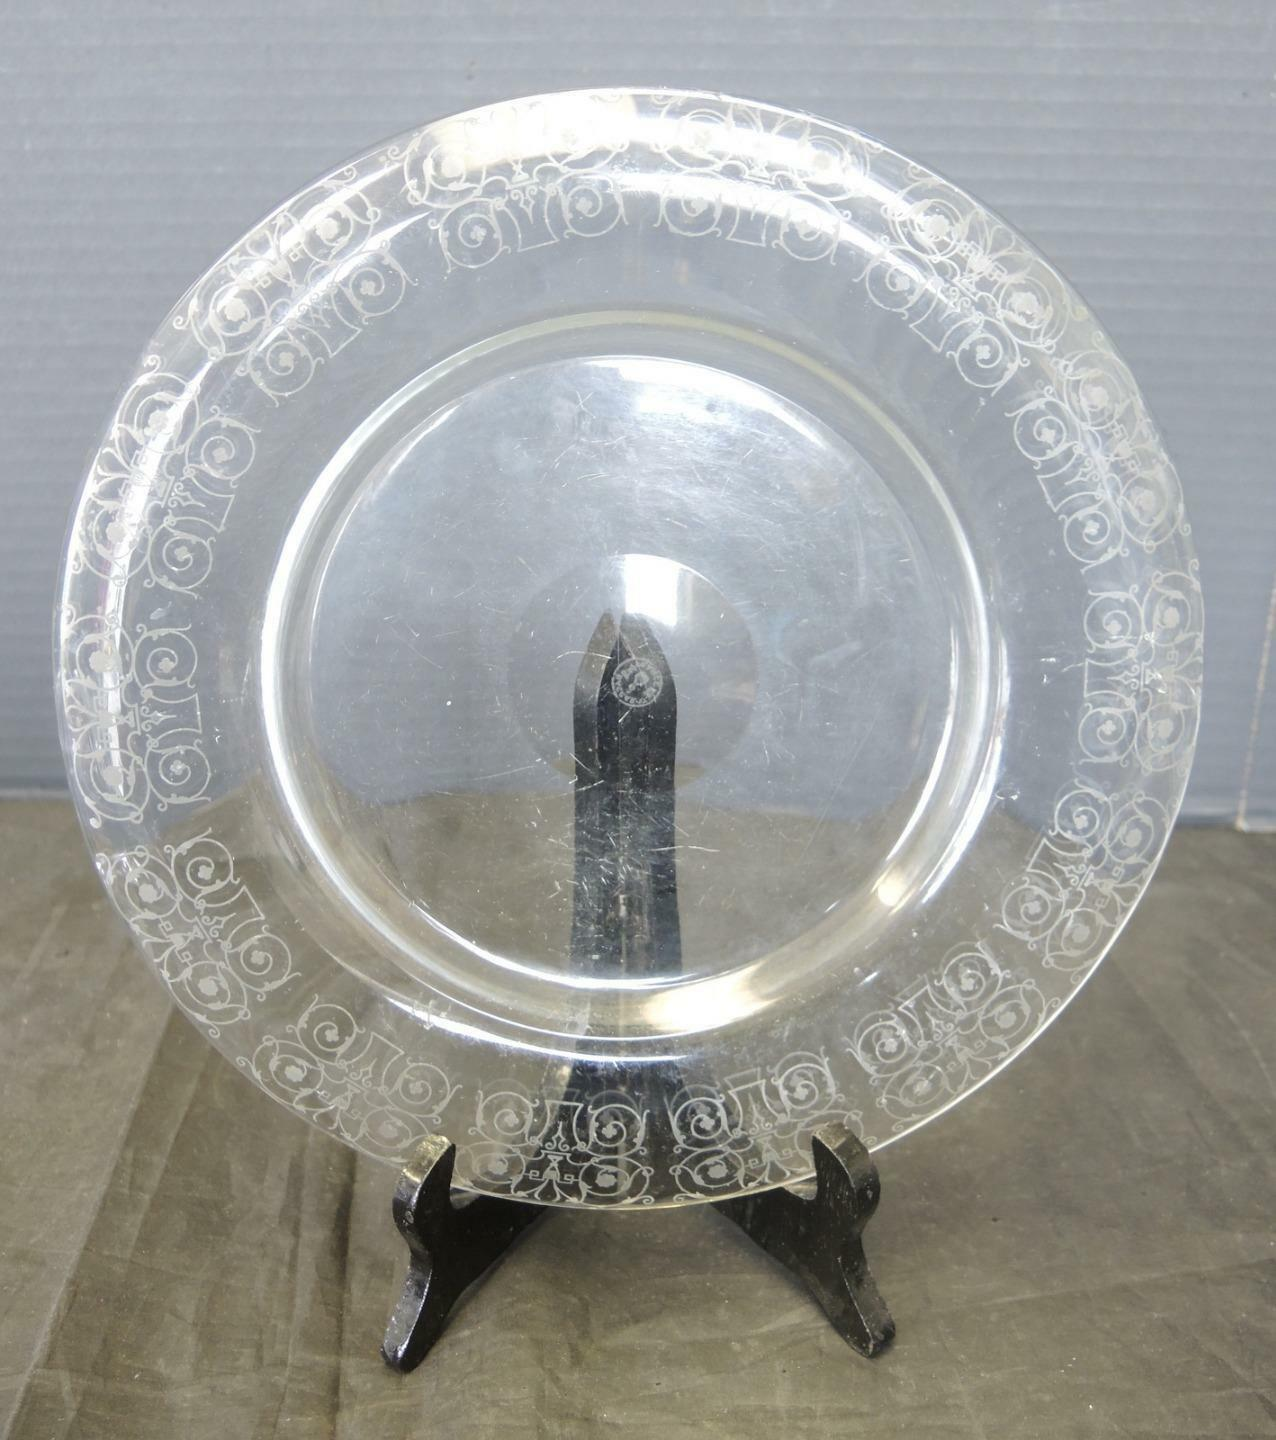 Primary image for Vintage Etched Glass French Baccarat Michelangelo Crystal Rolled Rim Plate